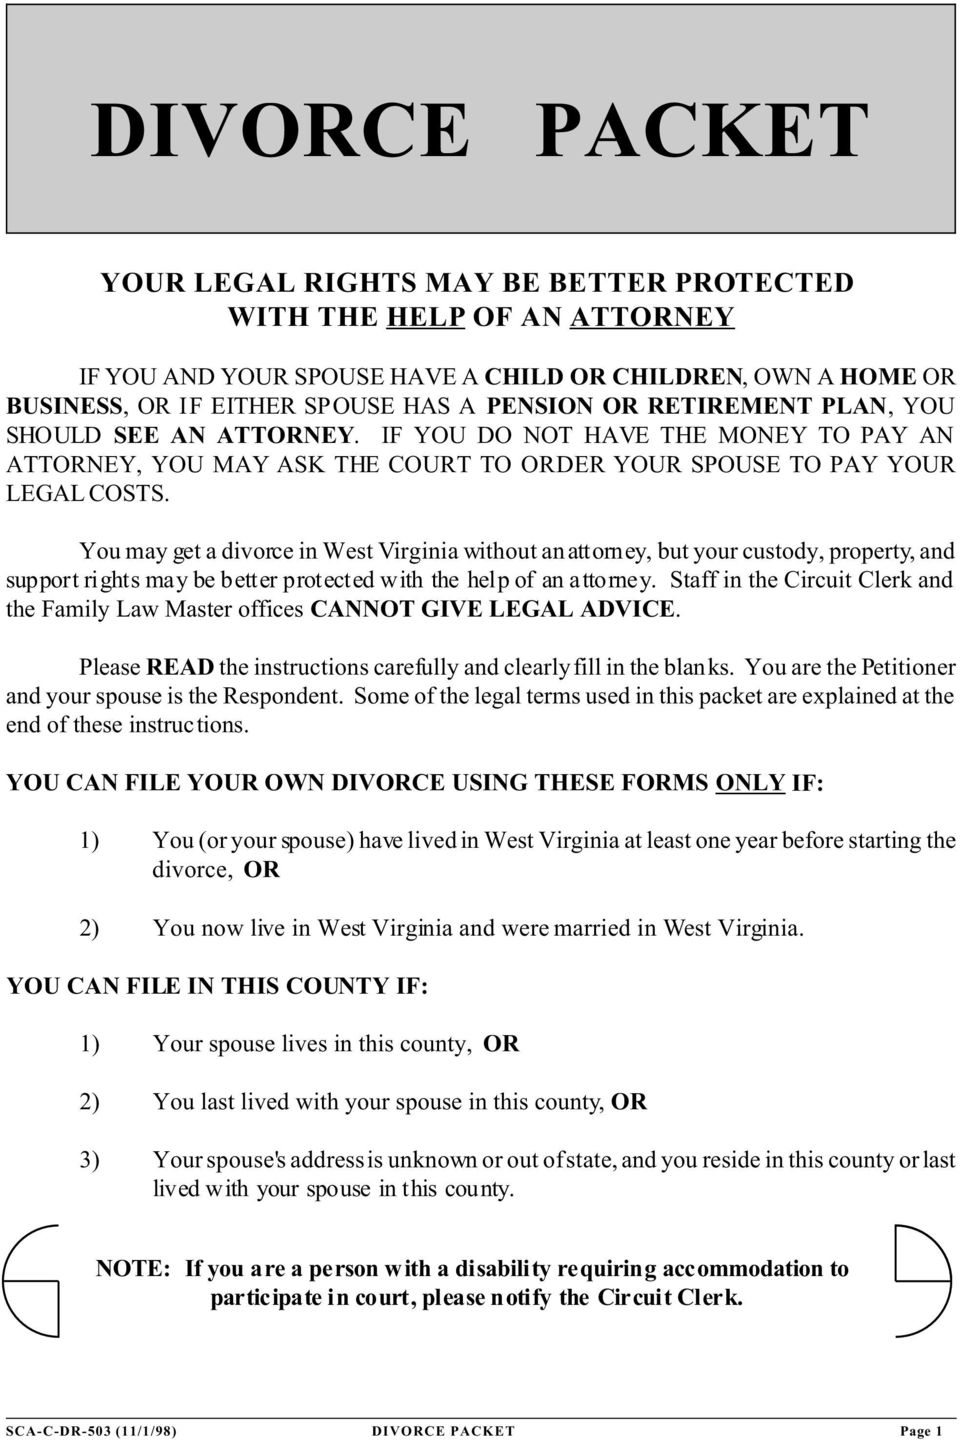 You may get a divorce in West Virginia without an attorney, but your custody, property, and support rights may be better protected with the help of an attorney.